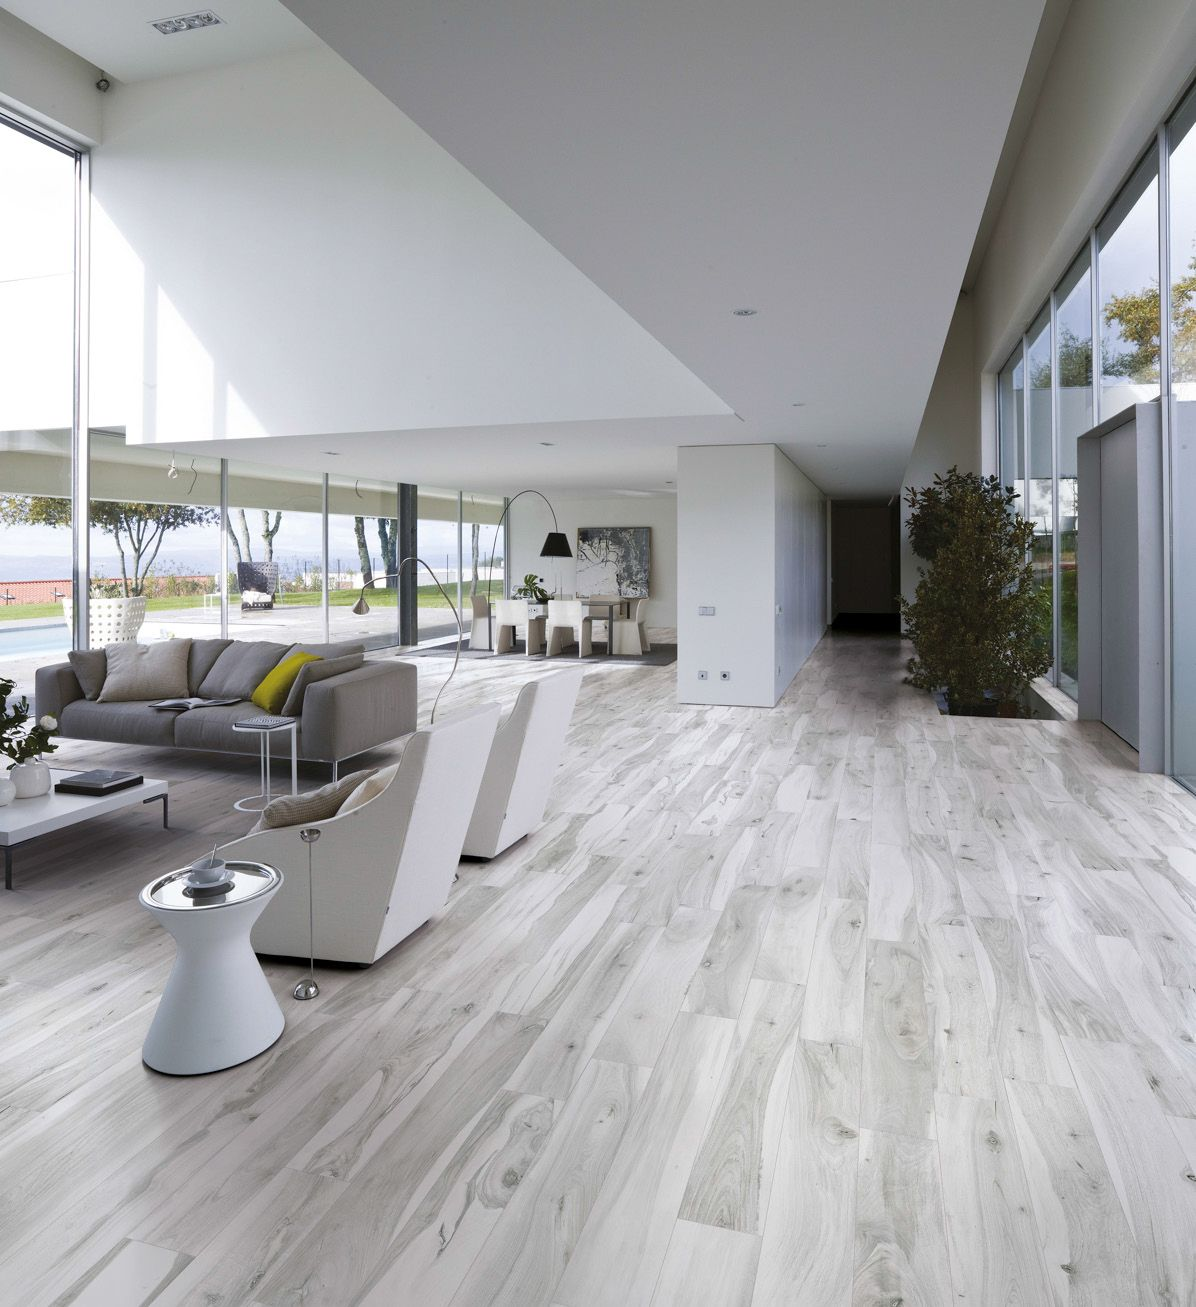 The Wood Look Tile Trend Is Going Strong And We Ve Discovered Some Amazing